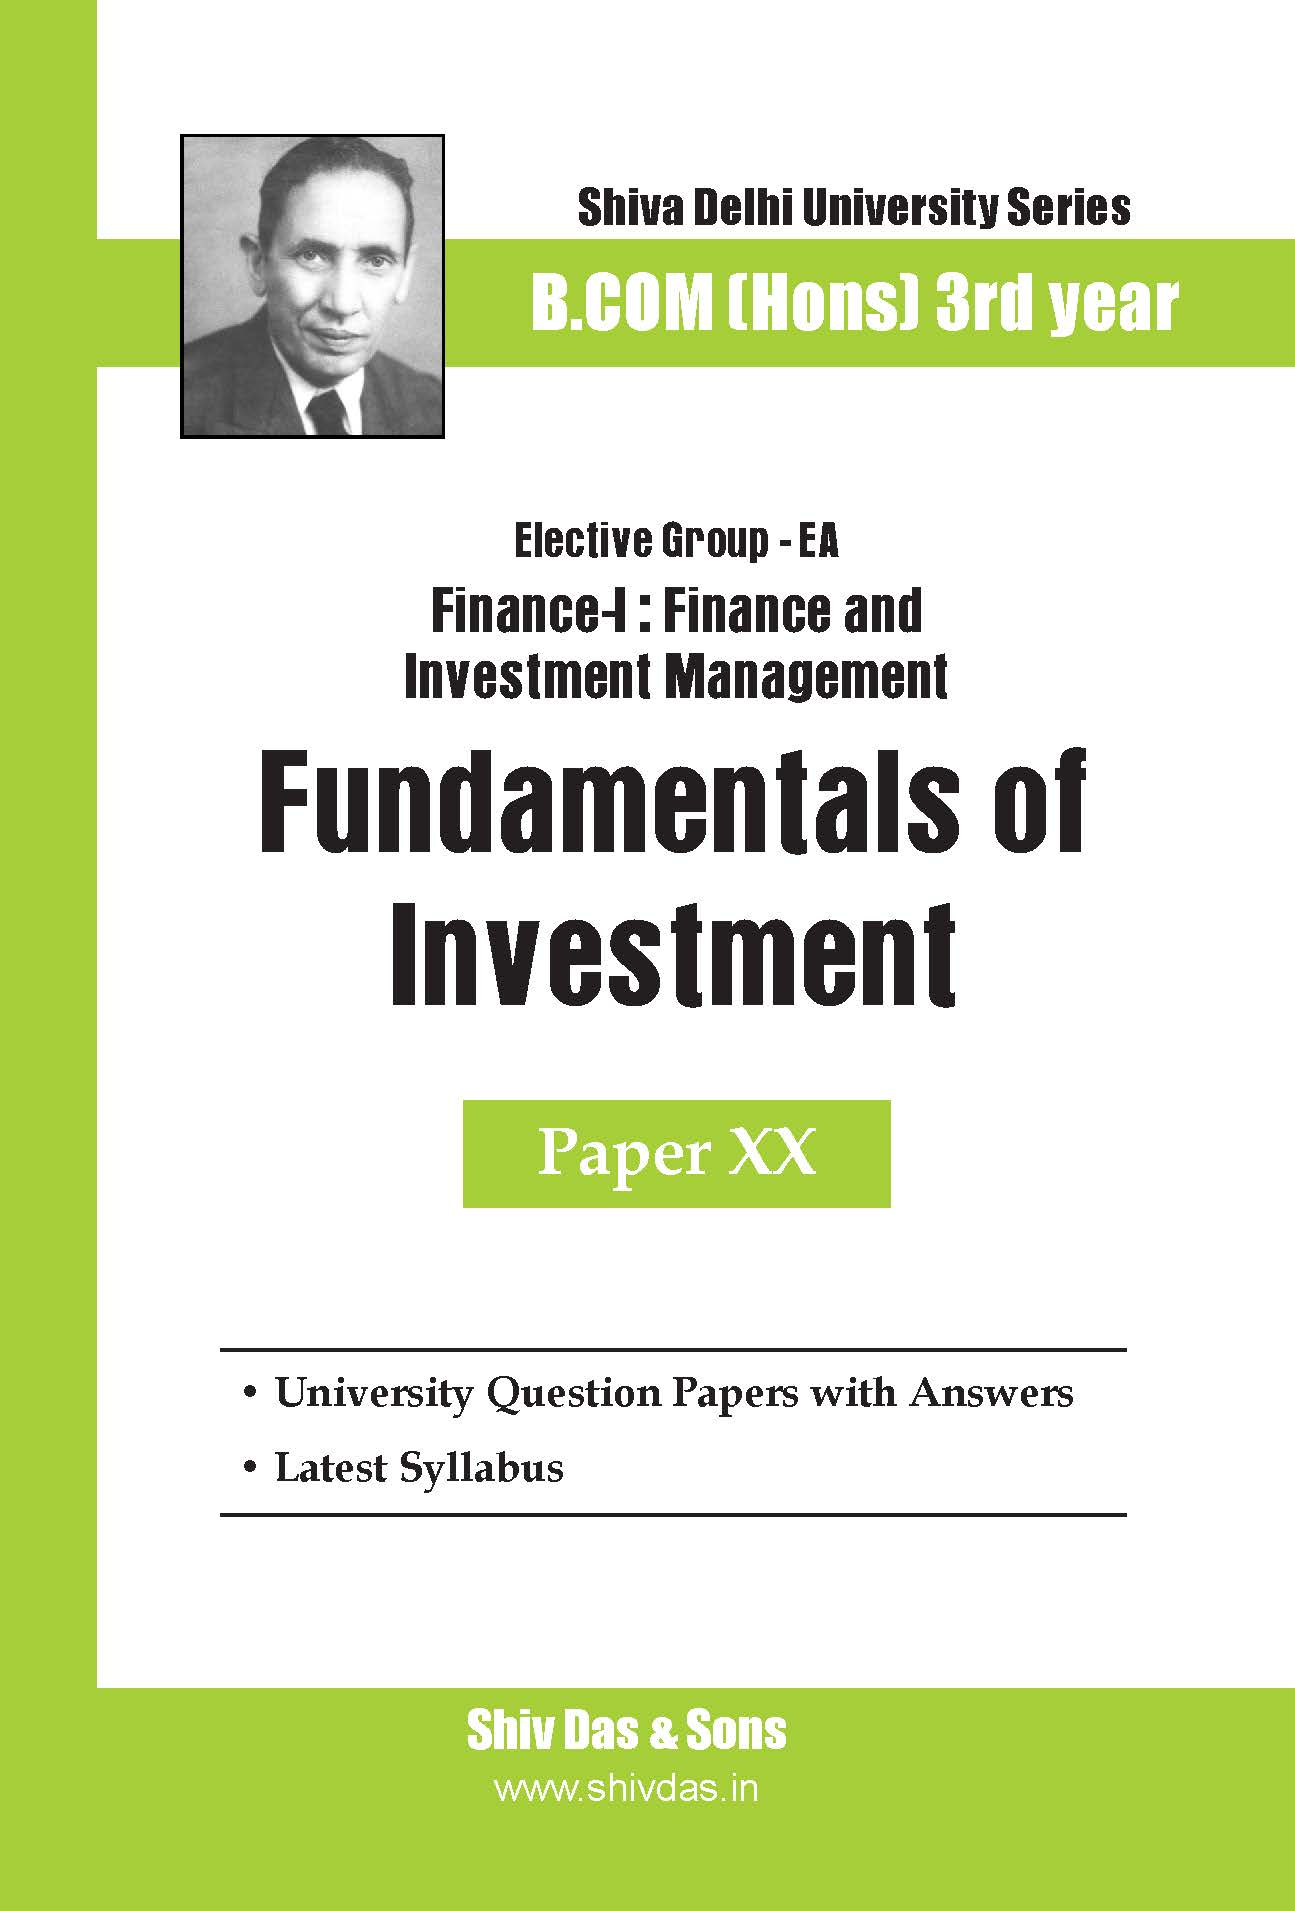 Fundamentals of Investment for B.Com Hons SOL/External 3rd Year